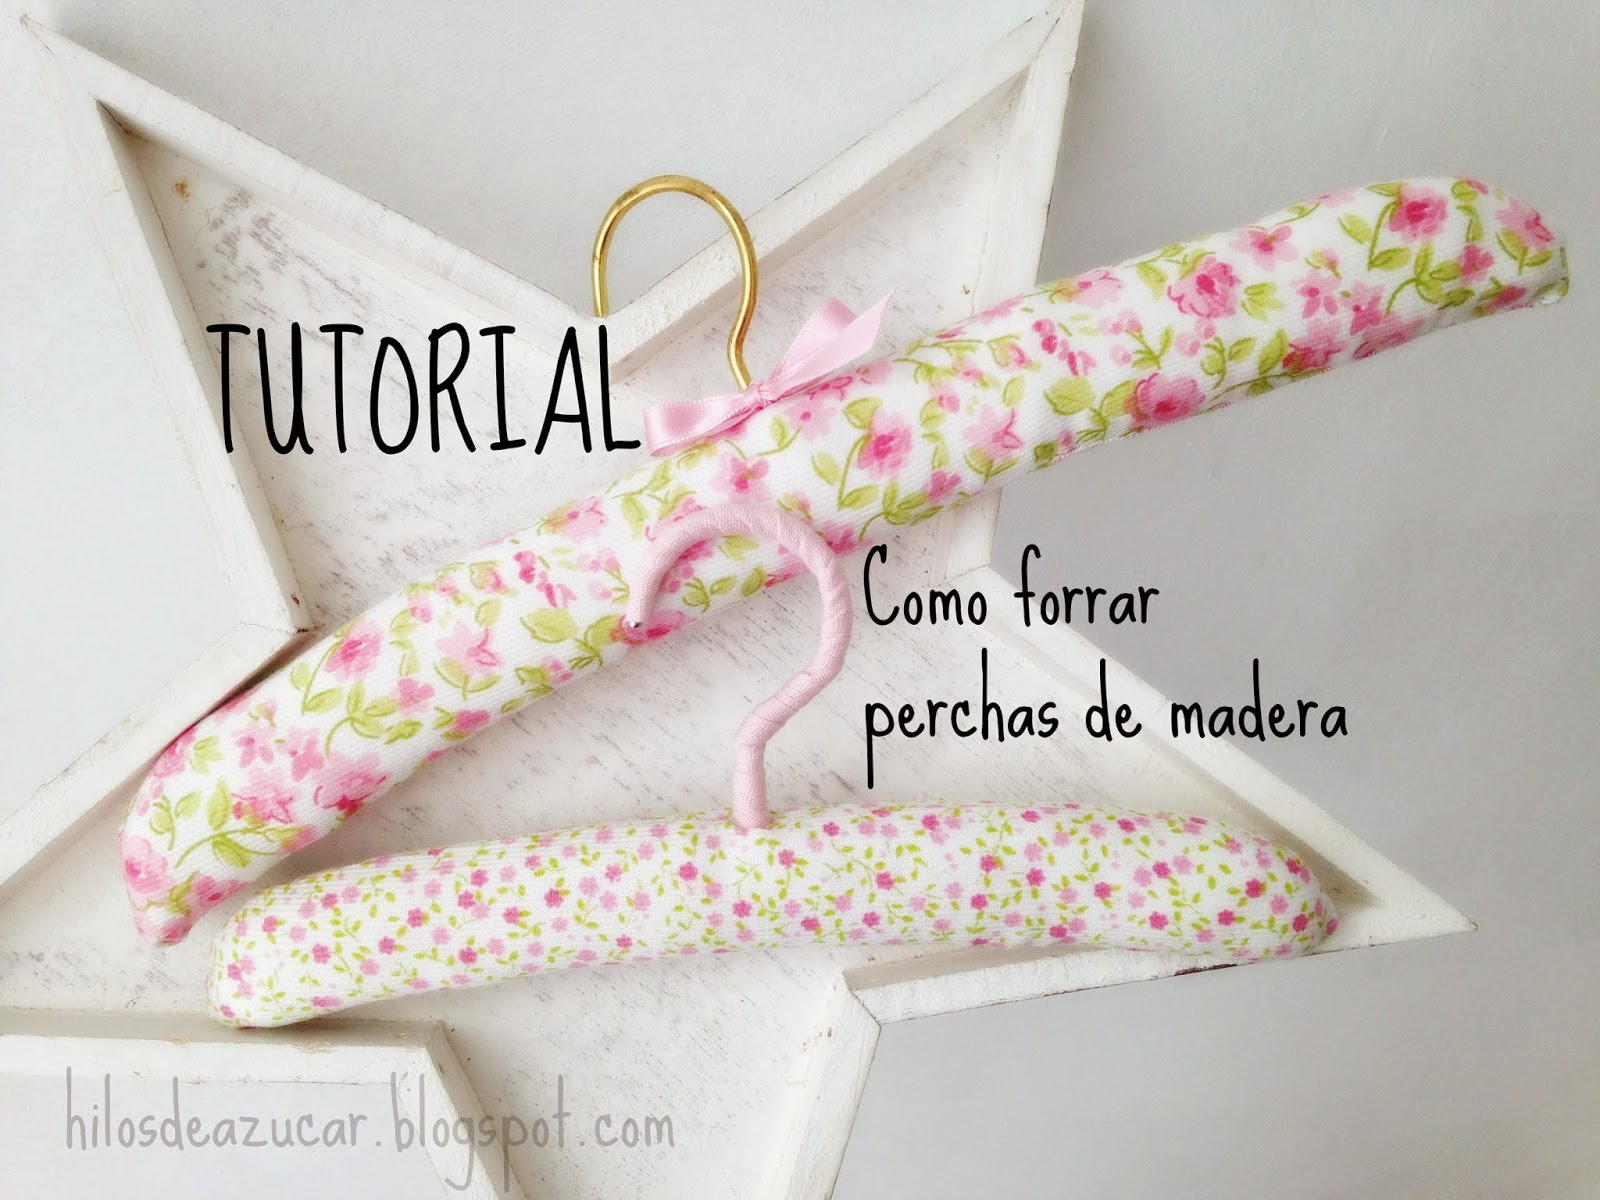 Hilos de az car tutorial como forrar perchas de madera for Ganchos para perchas